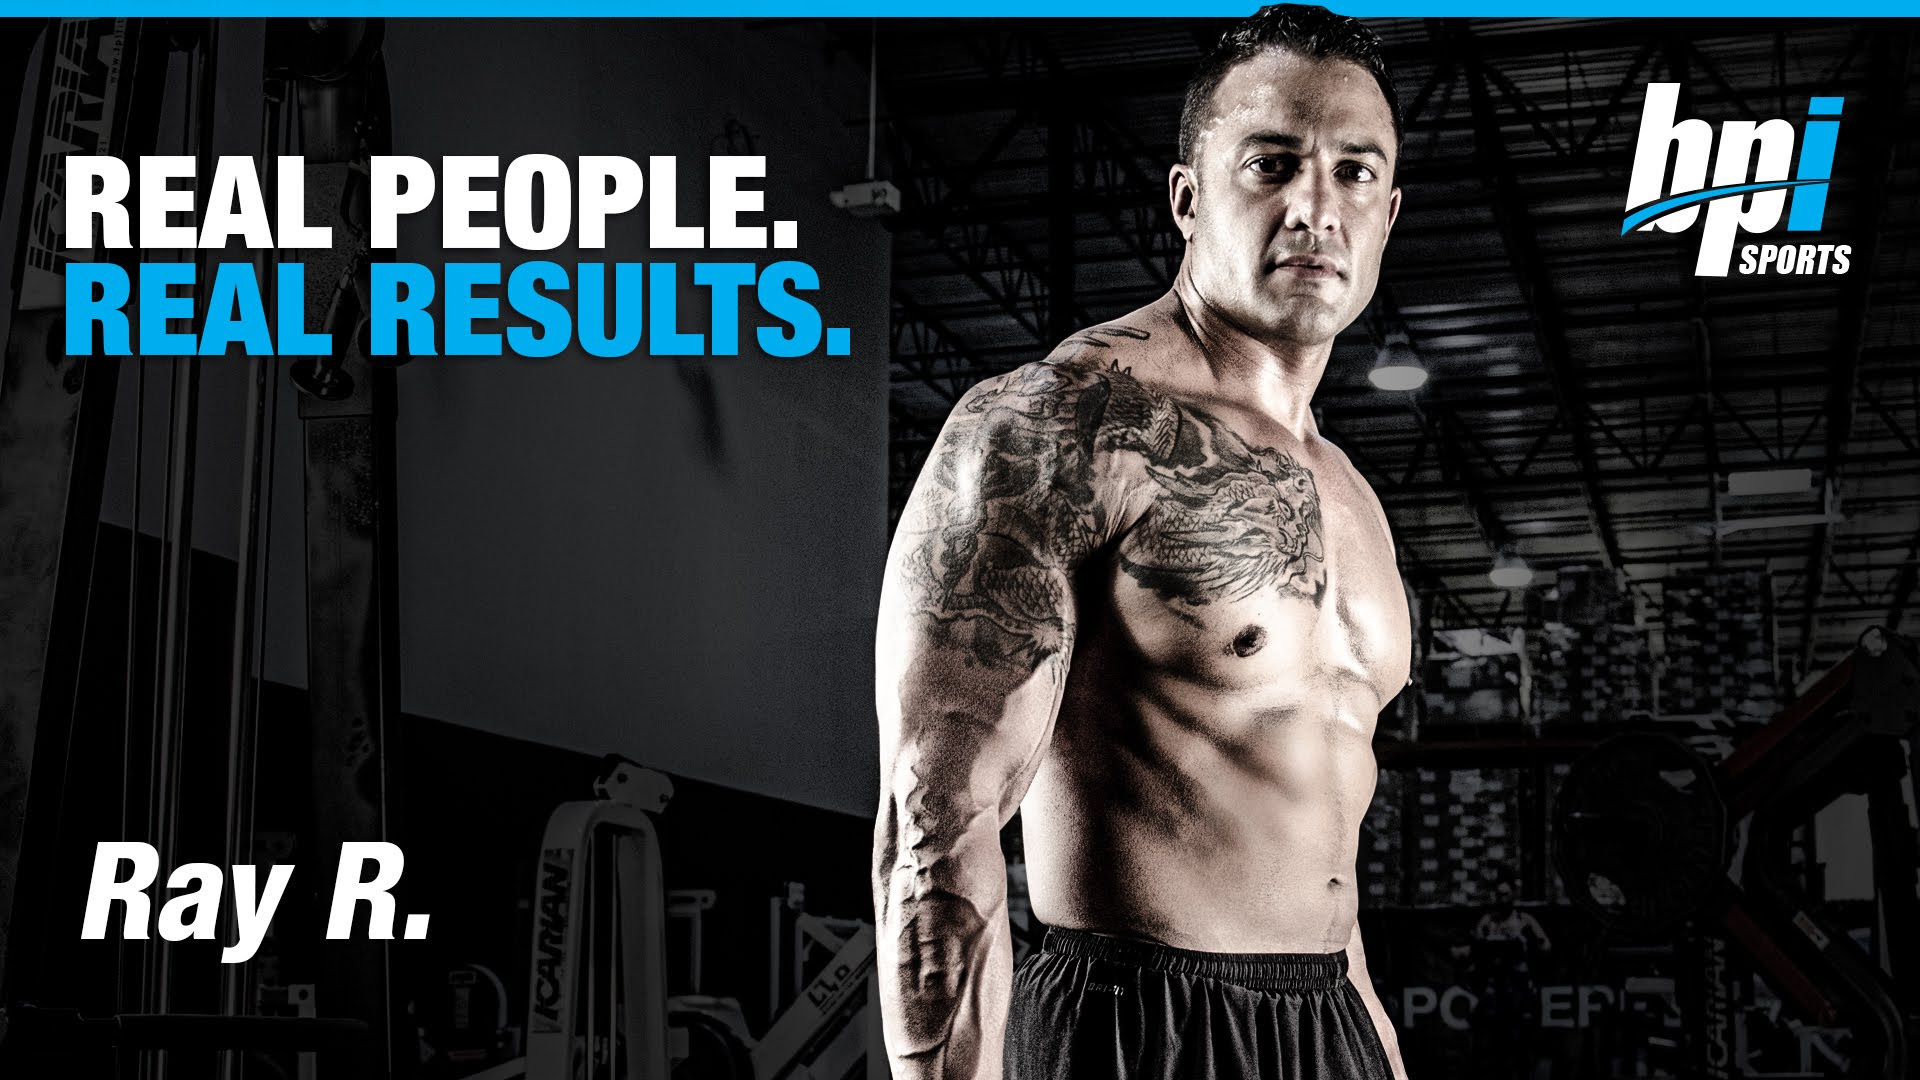 Real-People-Real-Results-with-Ray-BPI-Sports